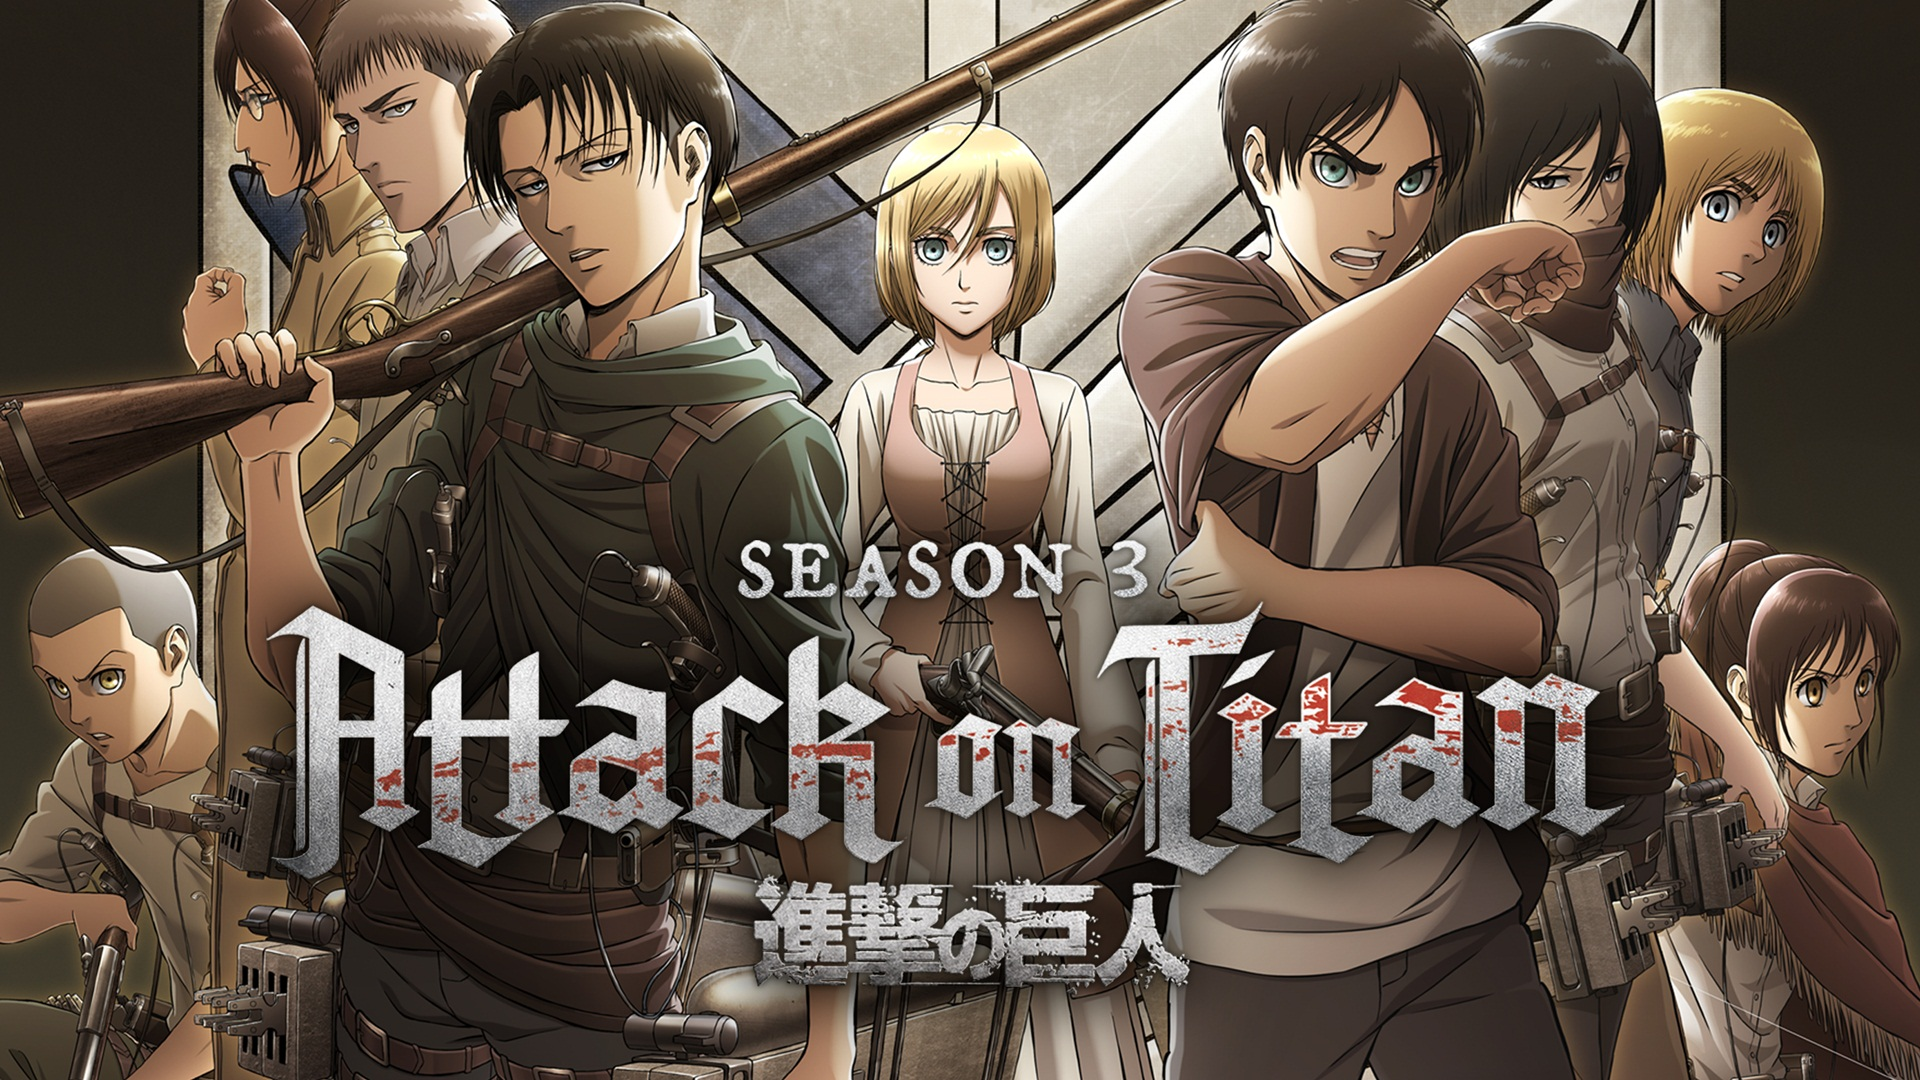 Attack On Titan Wallpaper Attack On Titan Season 3 Part 2 1920x1080 Wallpaper Teahub Io